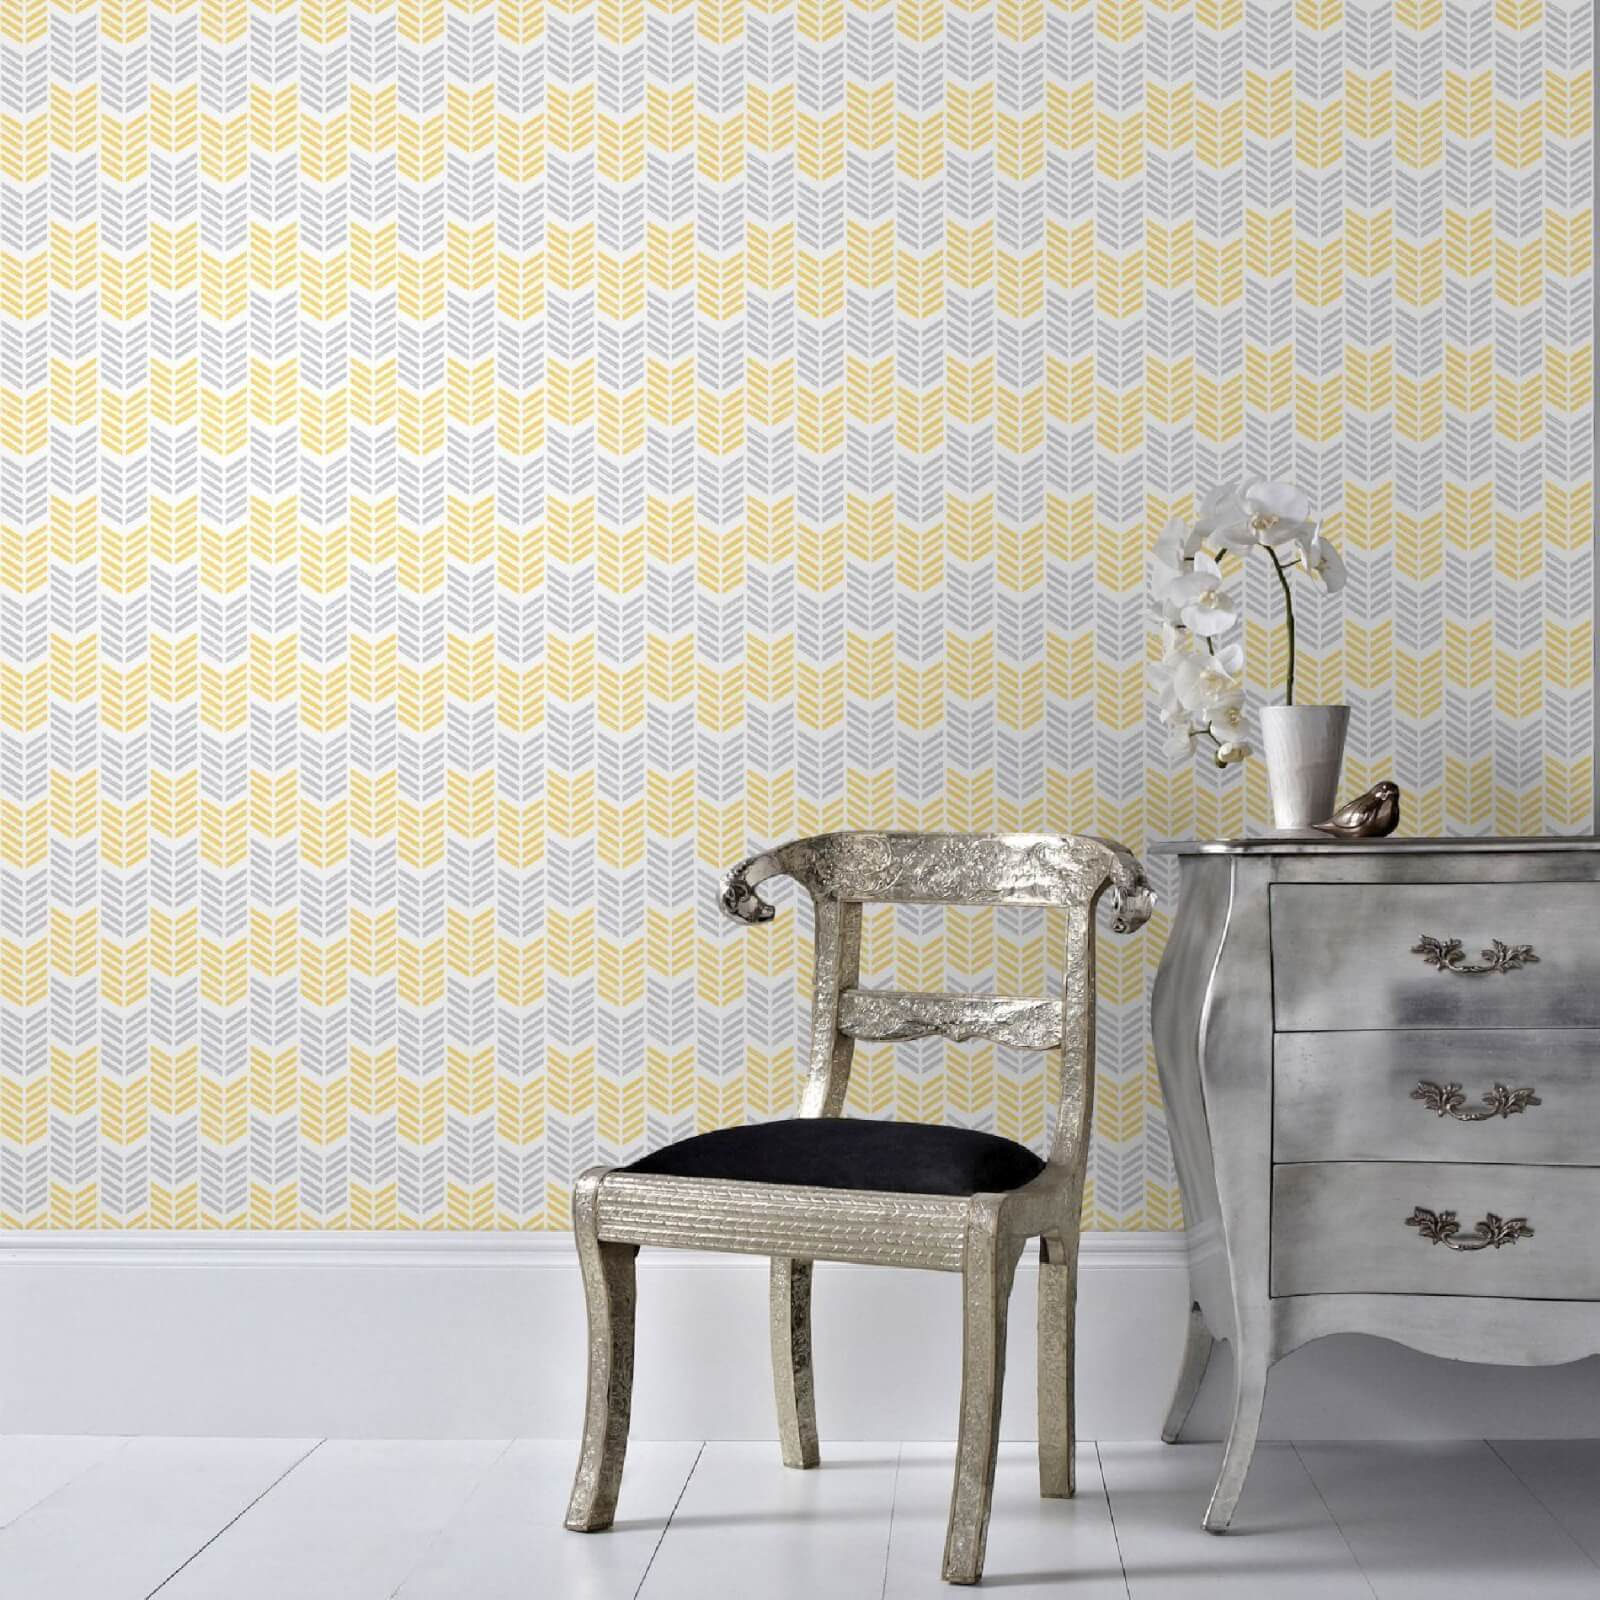 Superfresco Easy Oiti Chevron Geometric Wallpaper - Yellow